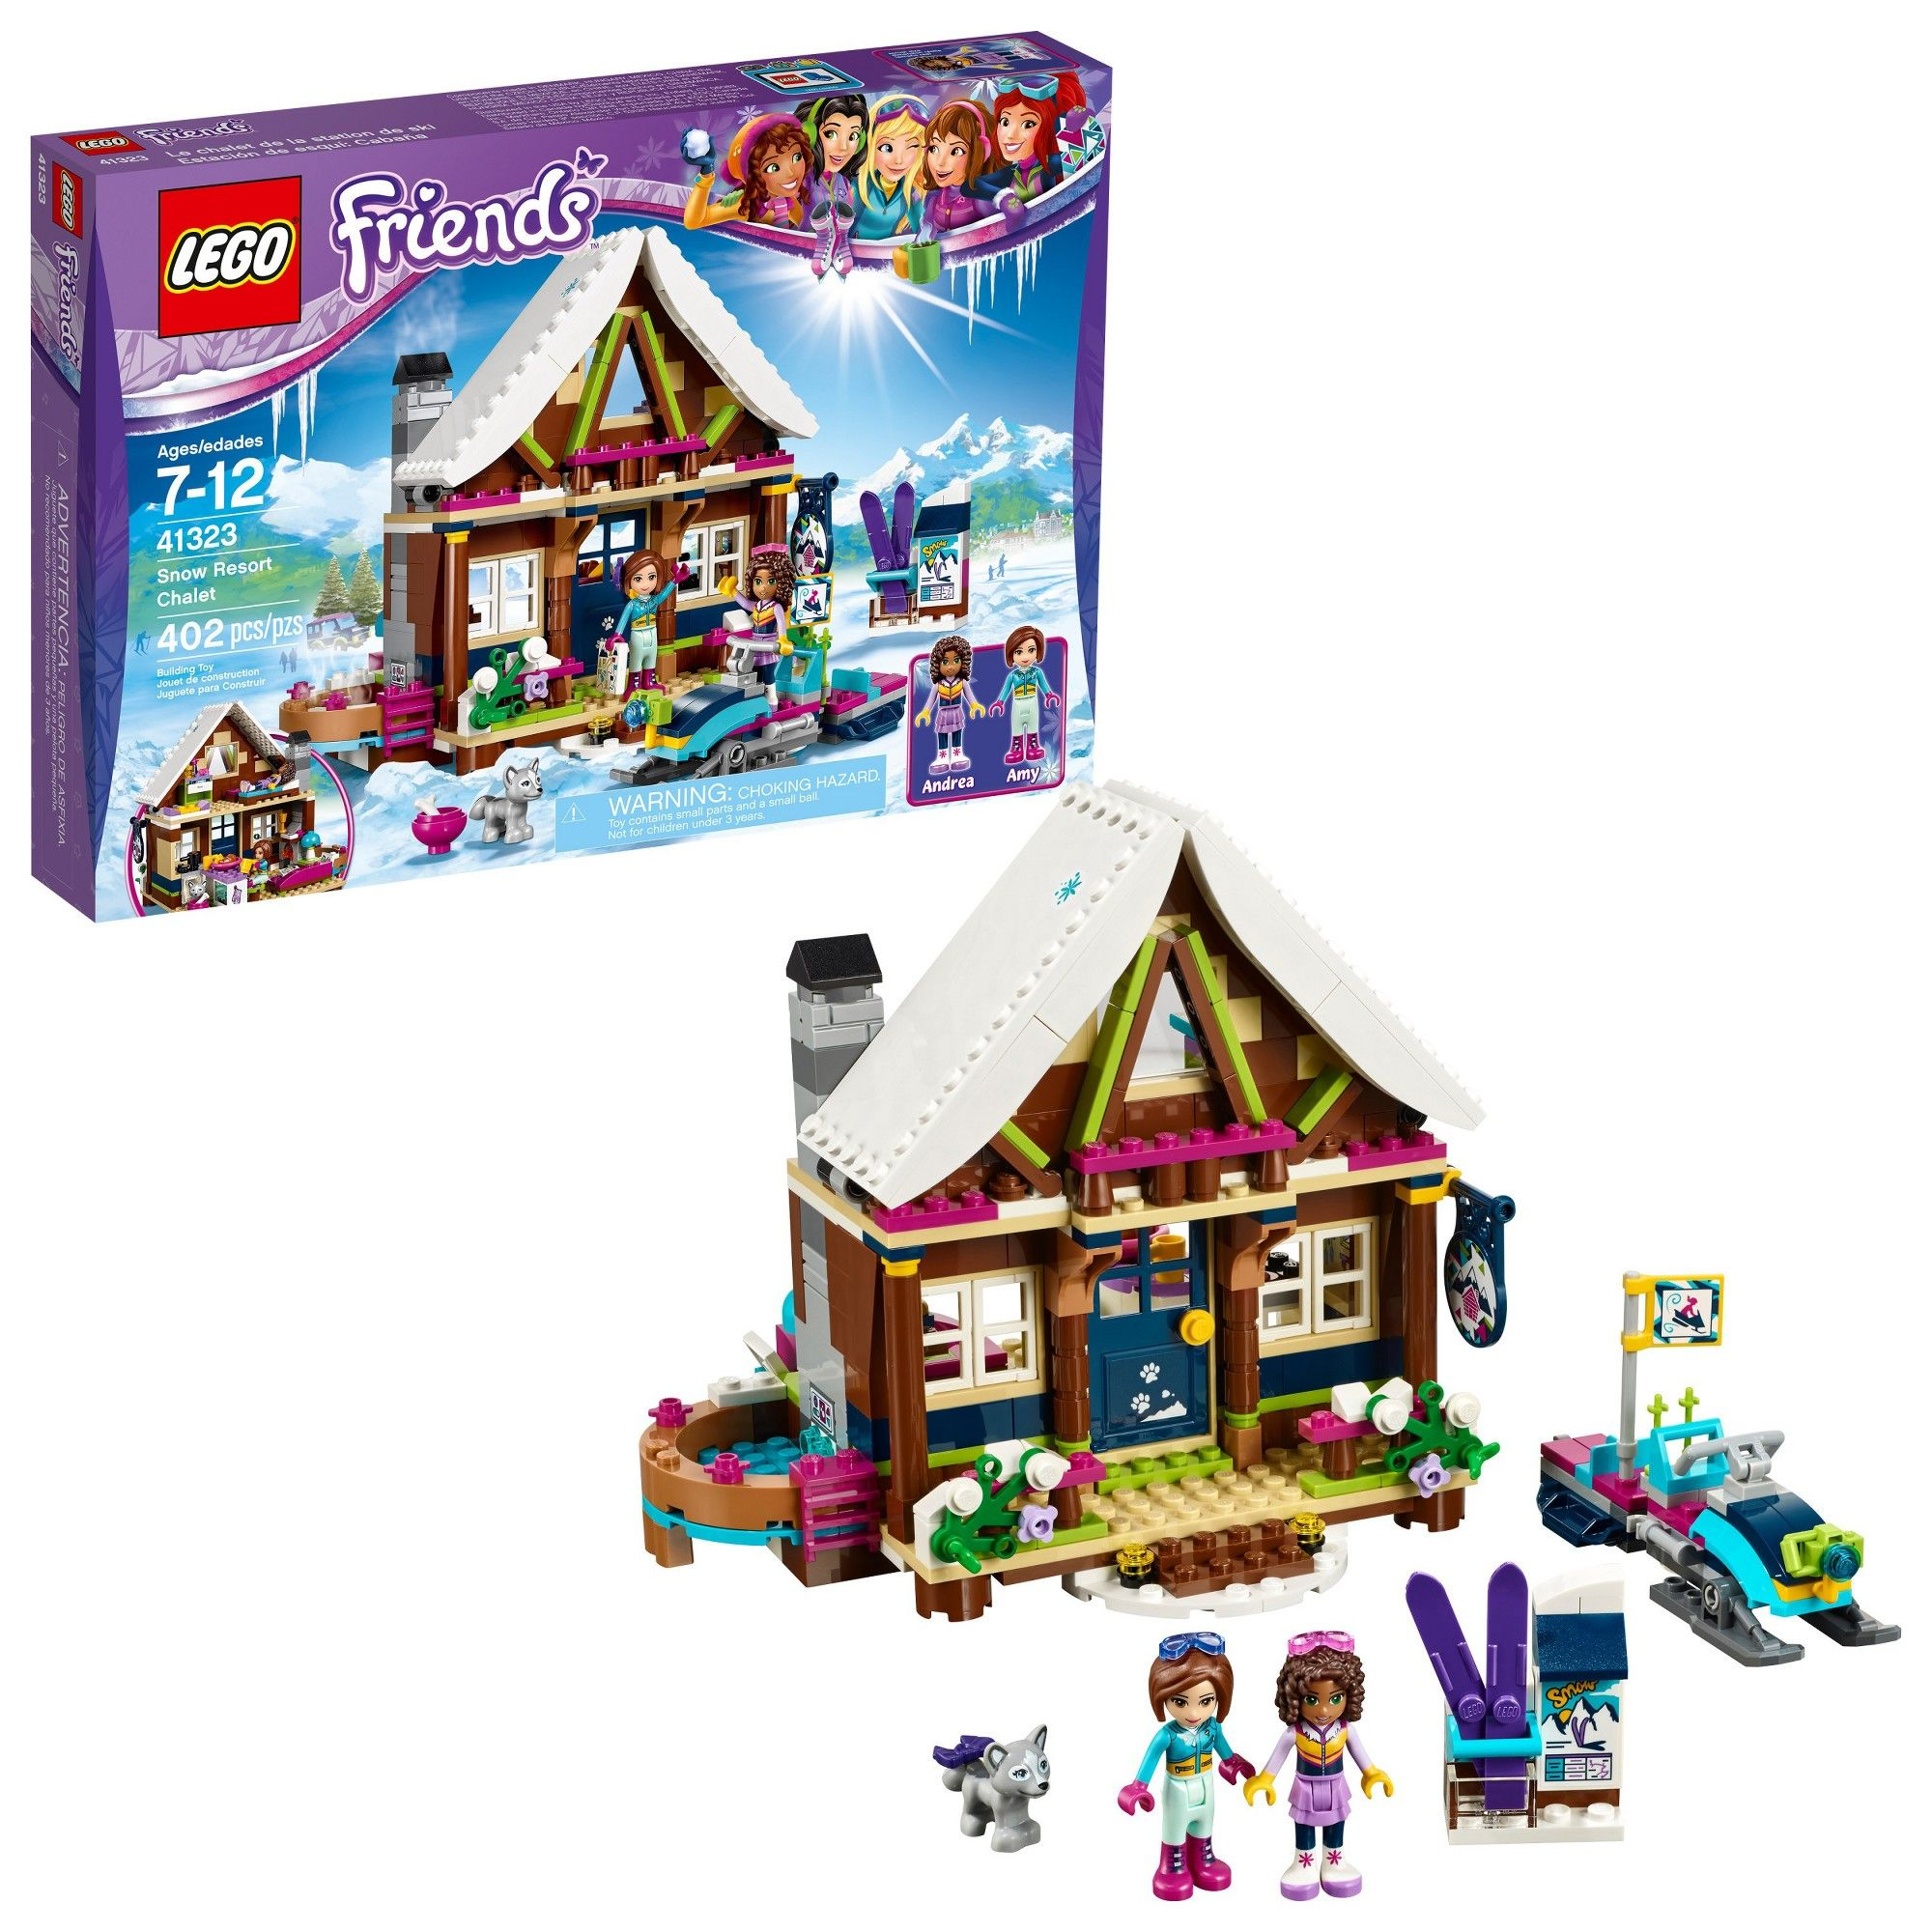 Lego Friends Christmas Sets.Lego Friends Snow Resort Chalet 41323 Products Log Cabin